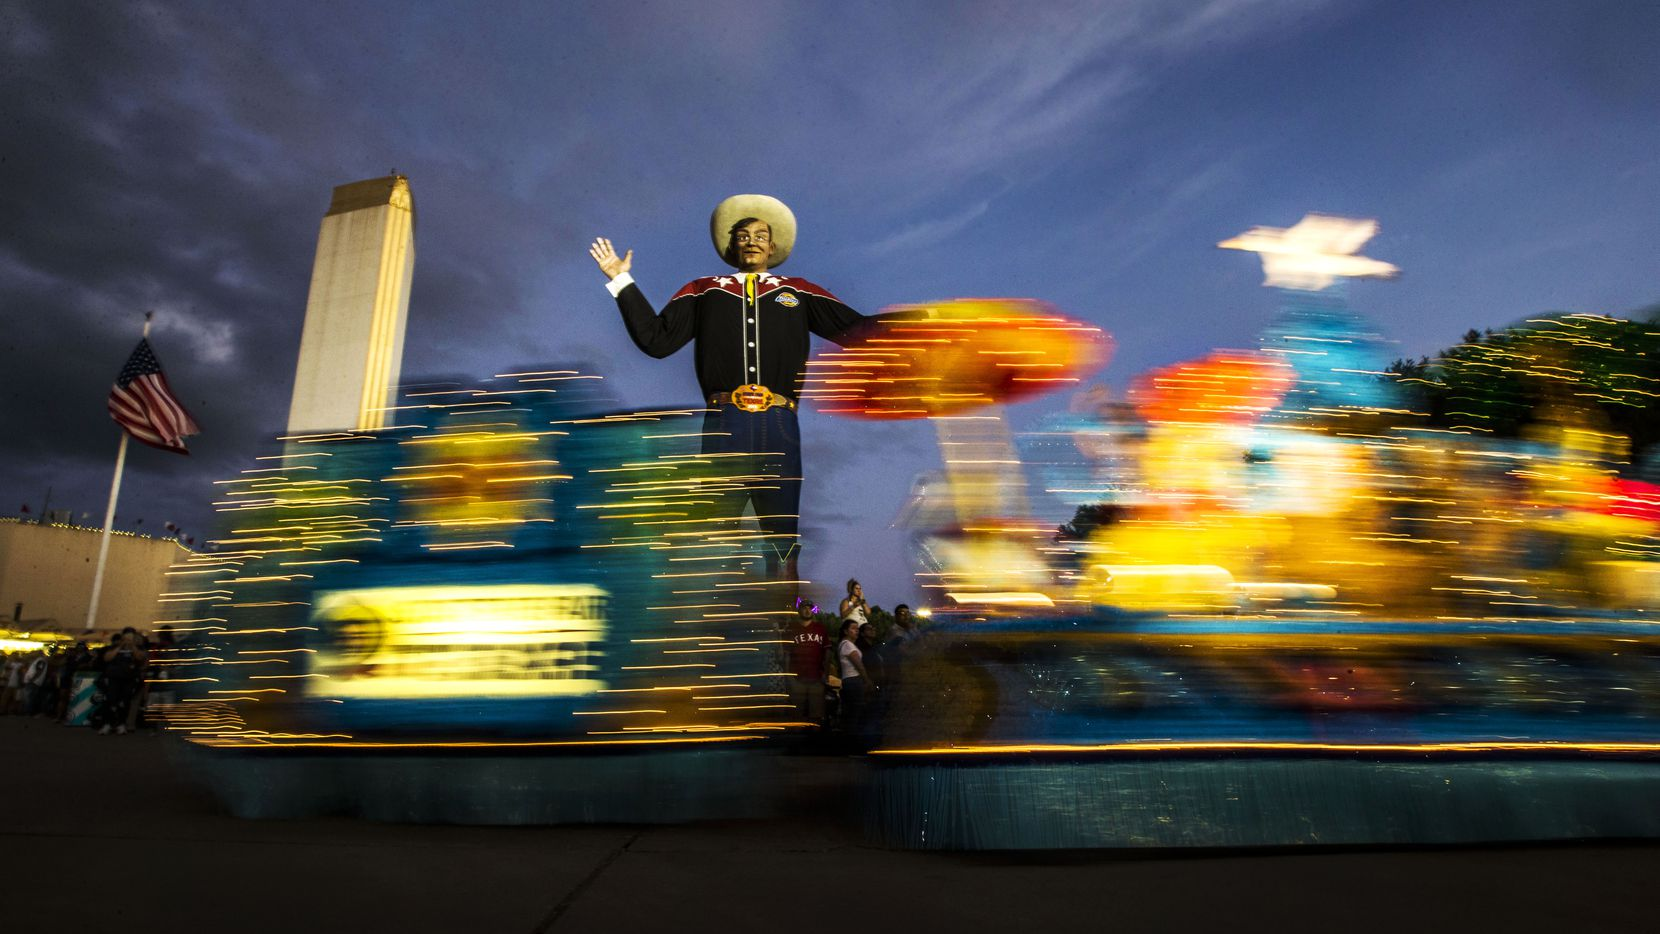 Floats roll past Big Tex during the Starlight Parade at the State Fair of Texas in Dallas on Sept. 30, 2018.